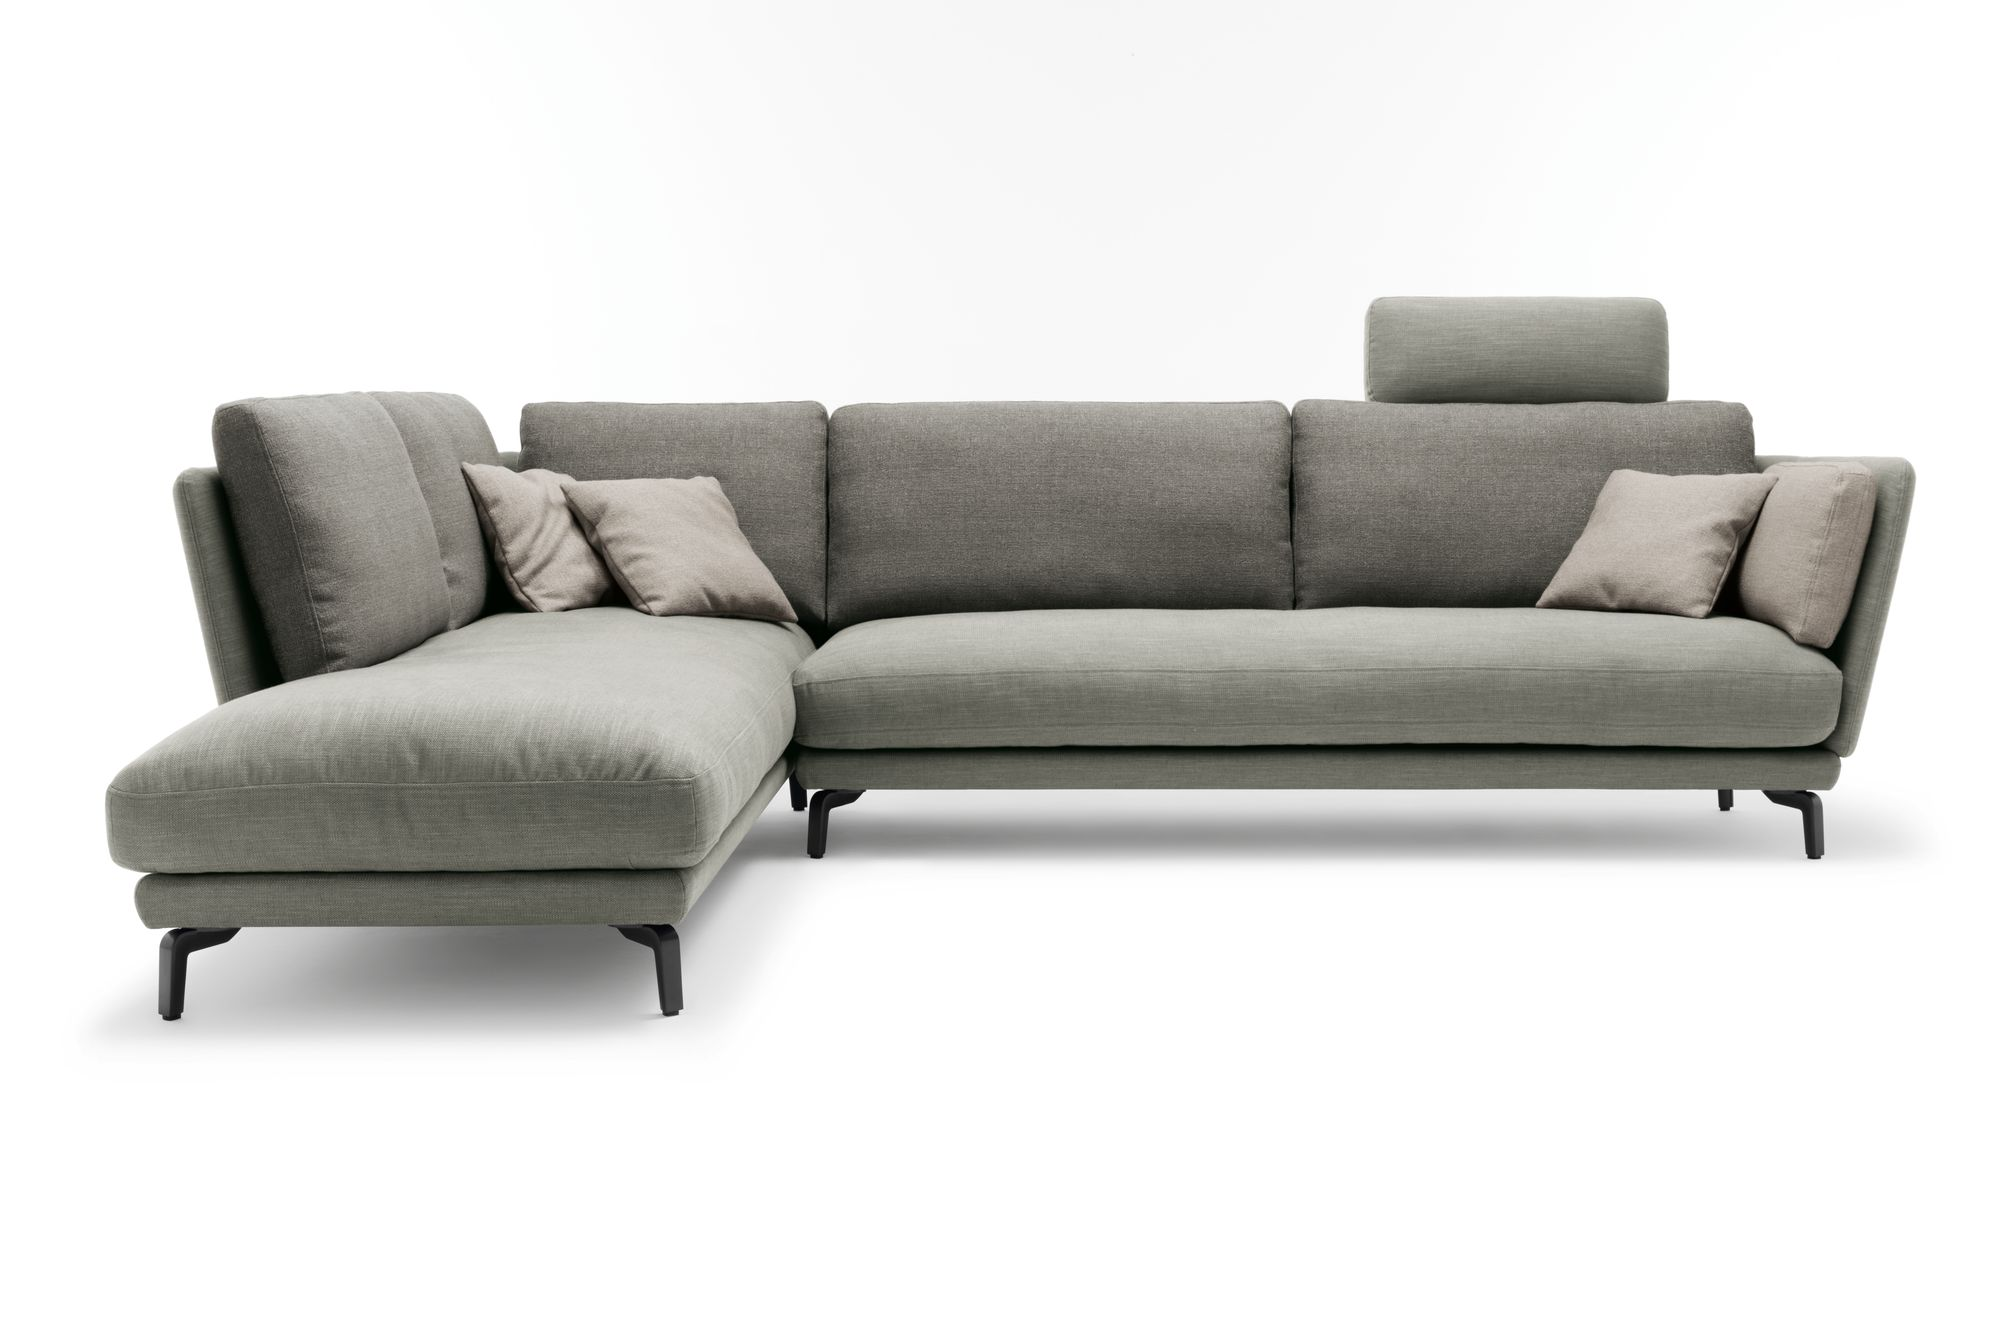 rolf benz rondo ecksofa in stoff hellgrau mit weicher On ecksofa rolf benz outlet